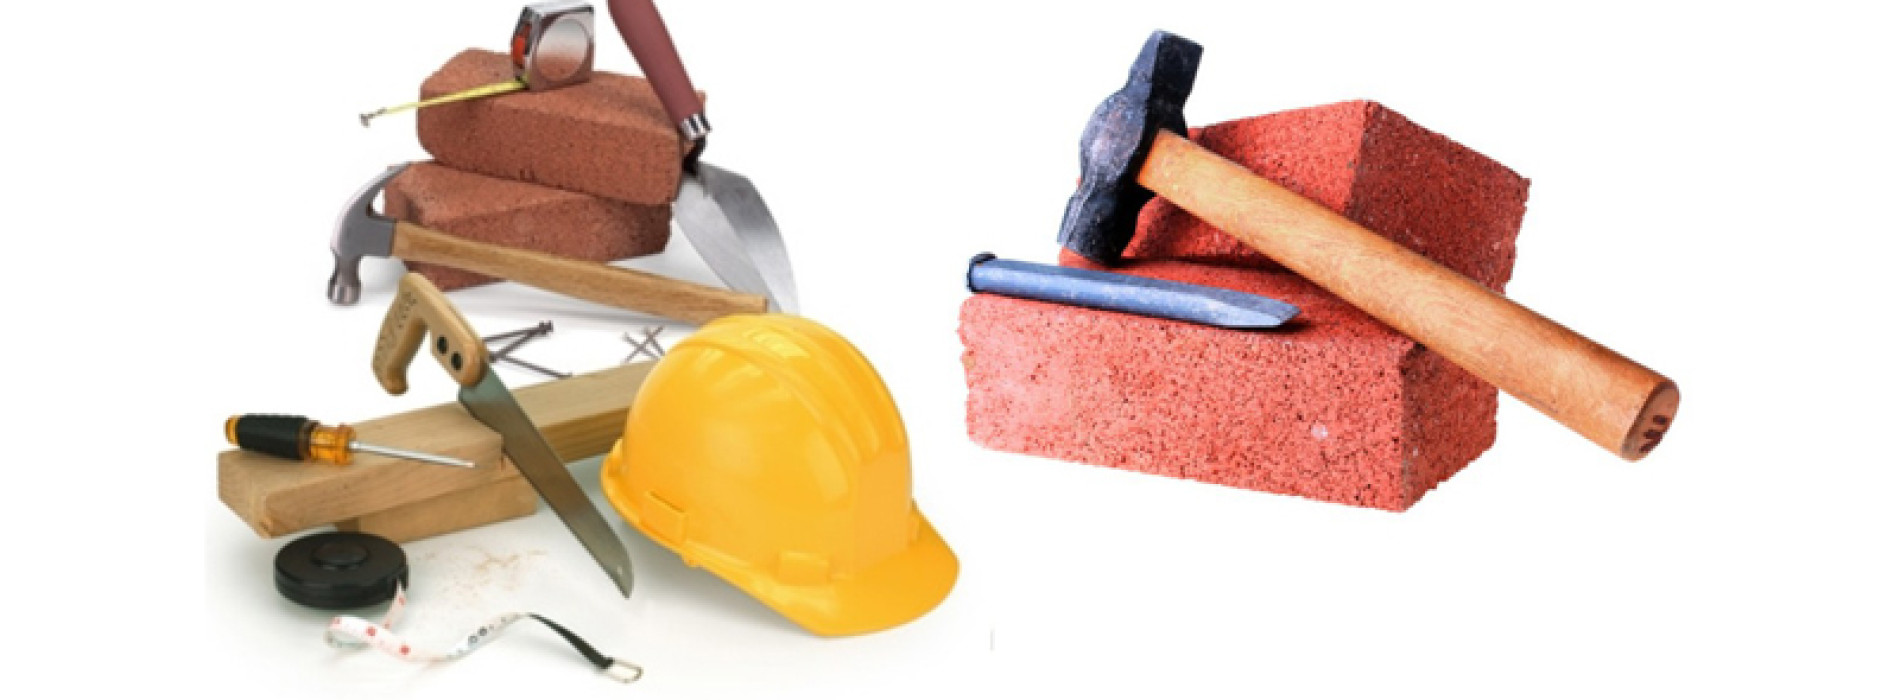 Accessible house modifications can make all the difference for I 10 building materials